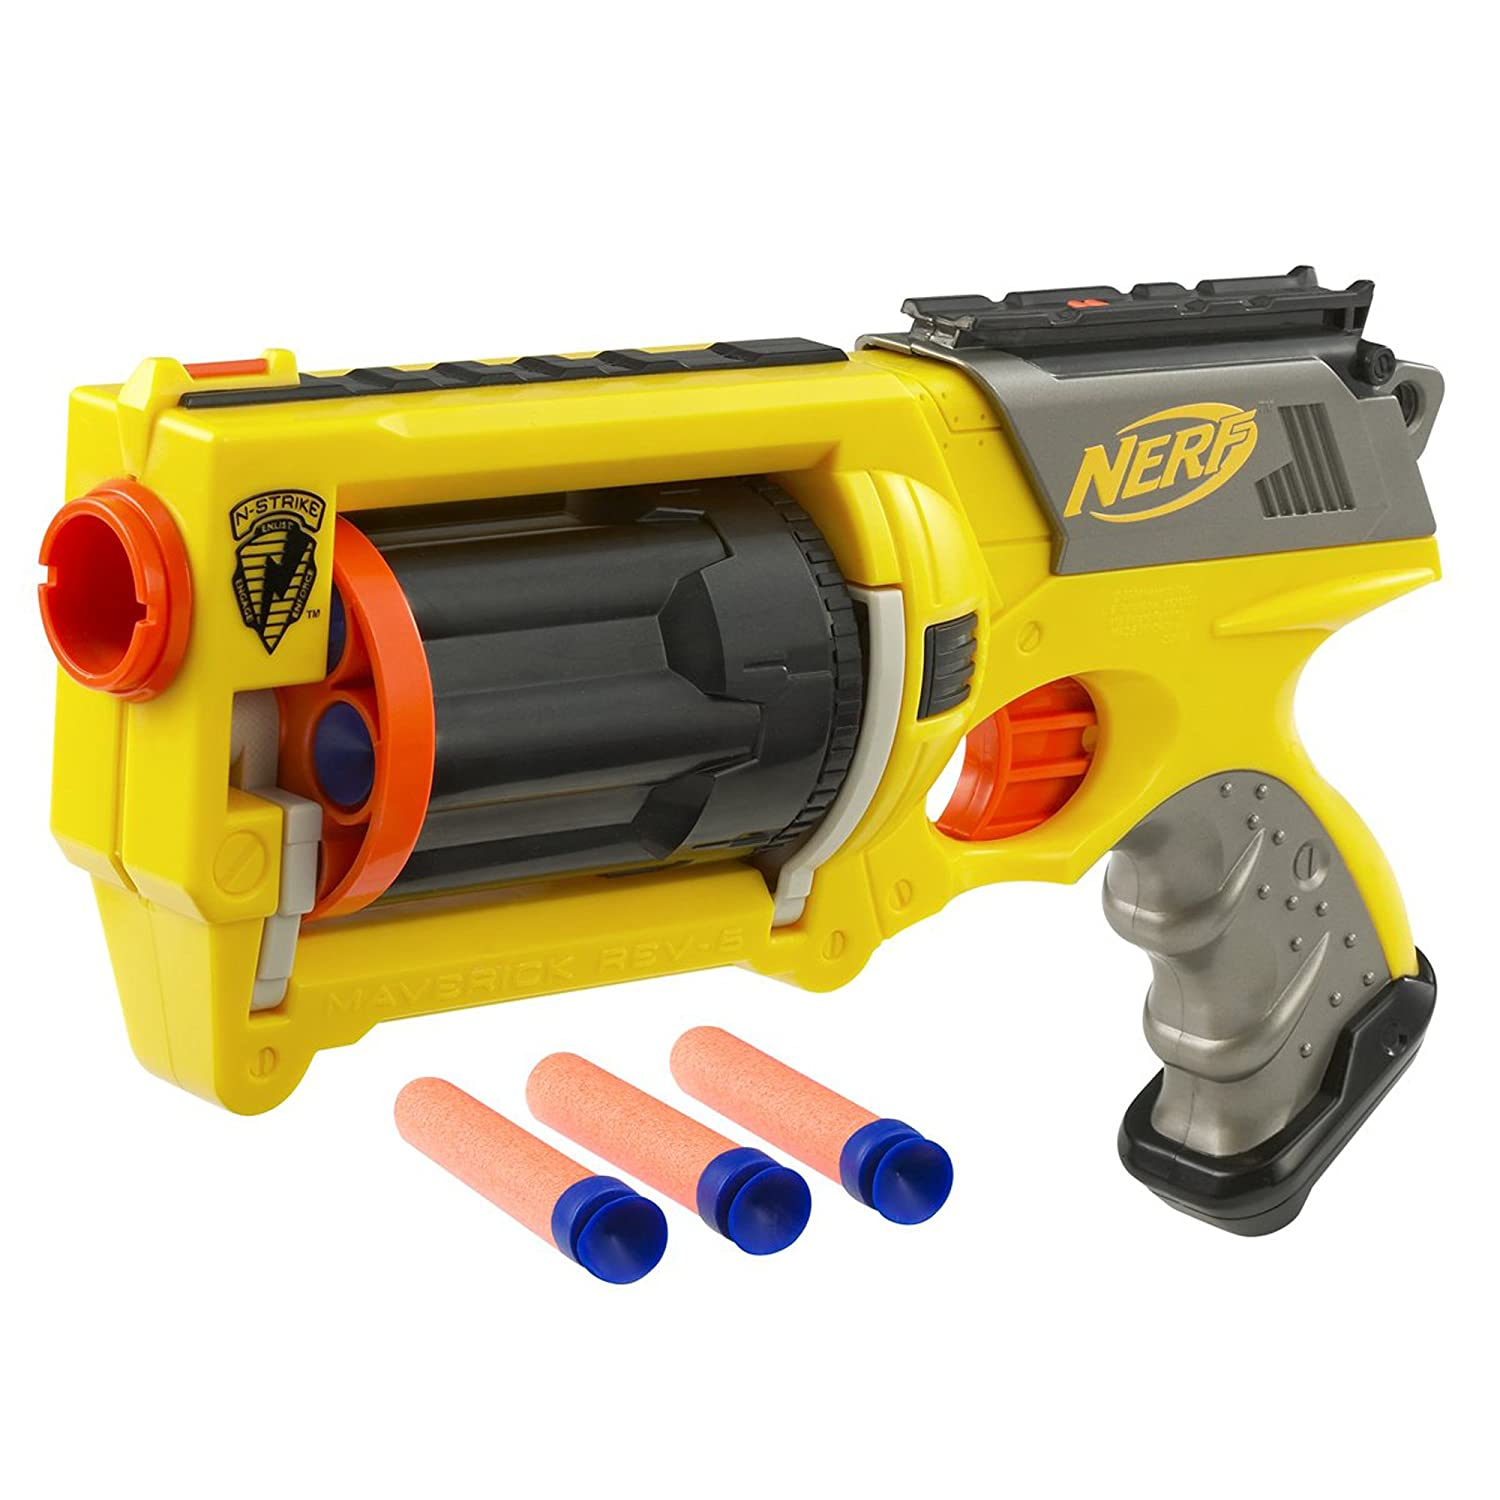 Image result for maverick nerf gun